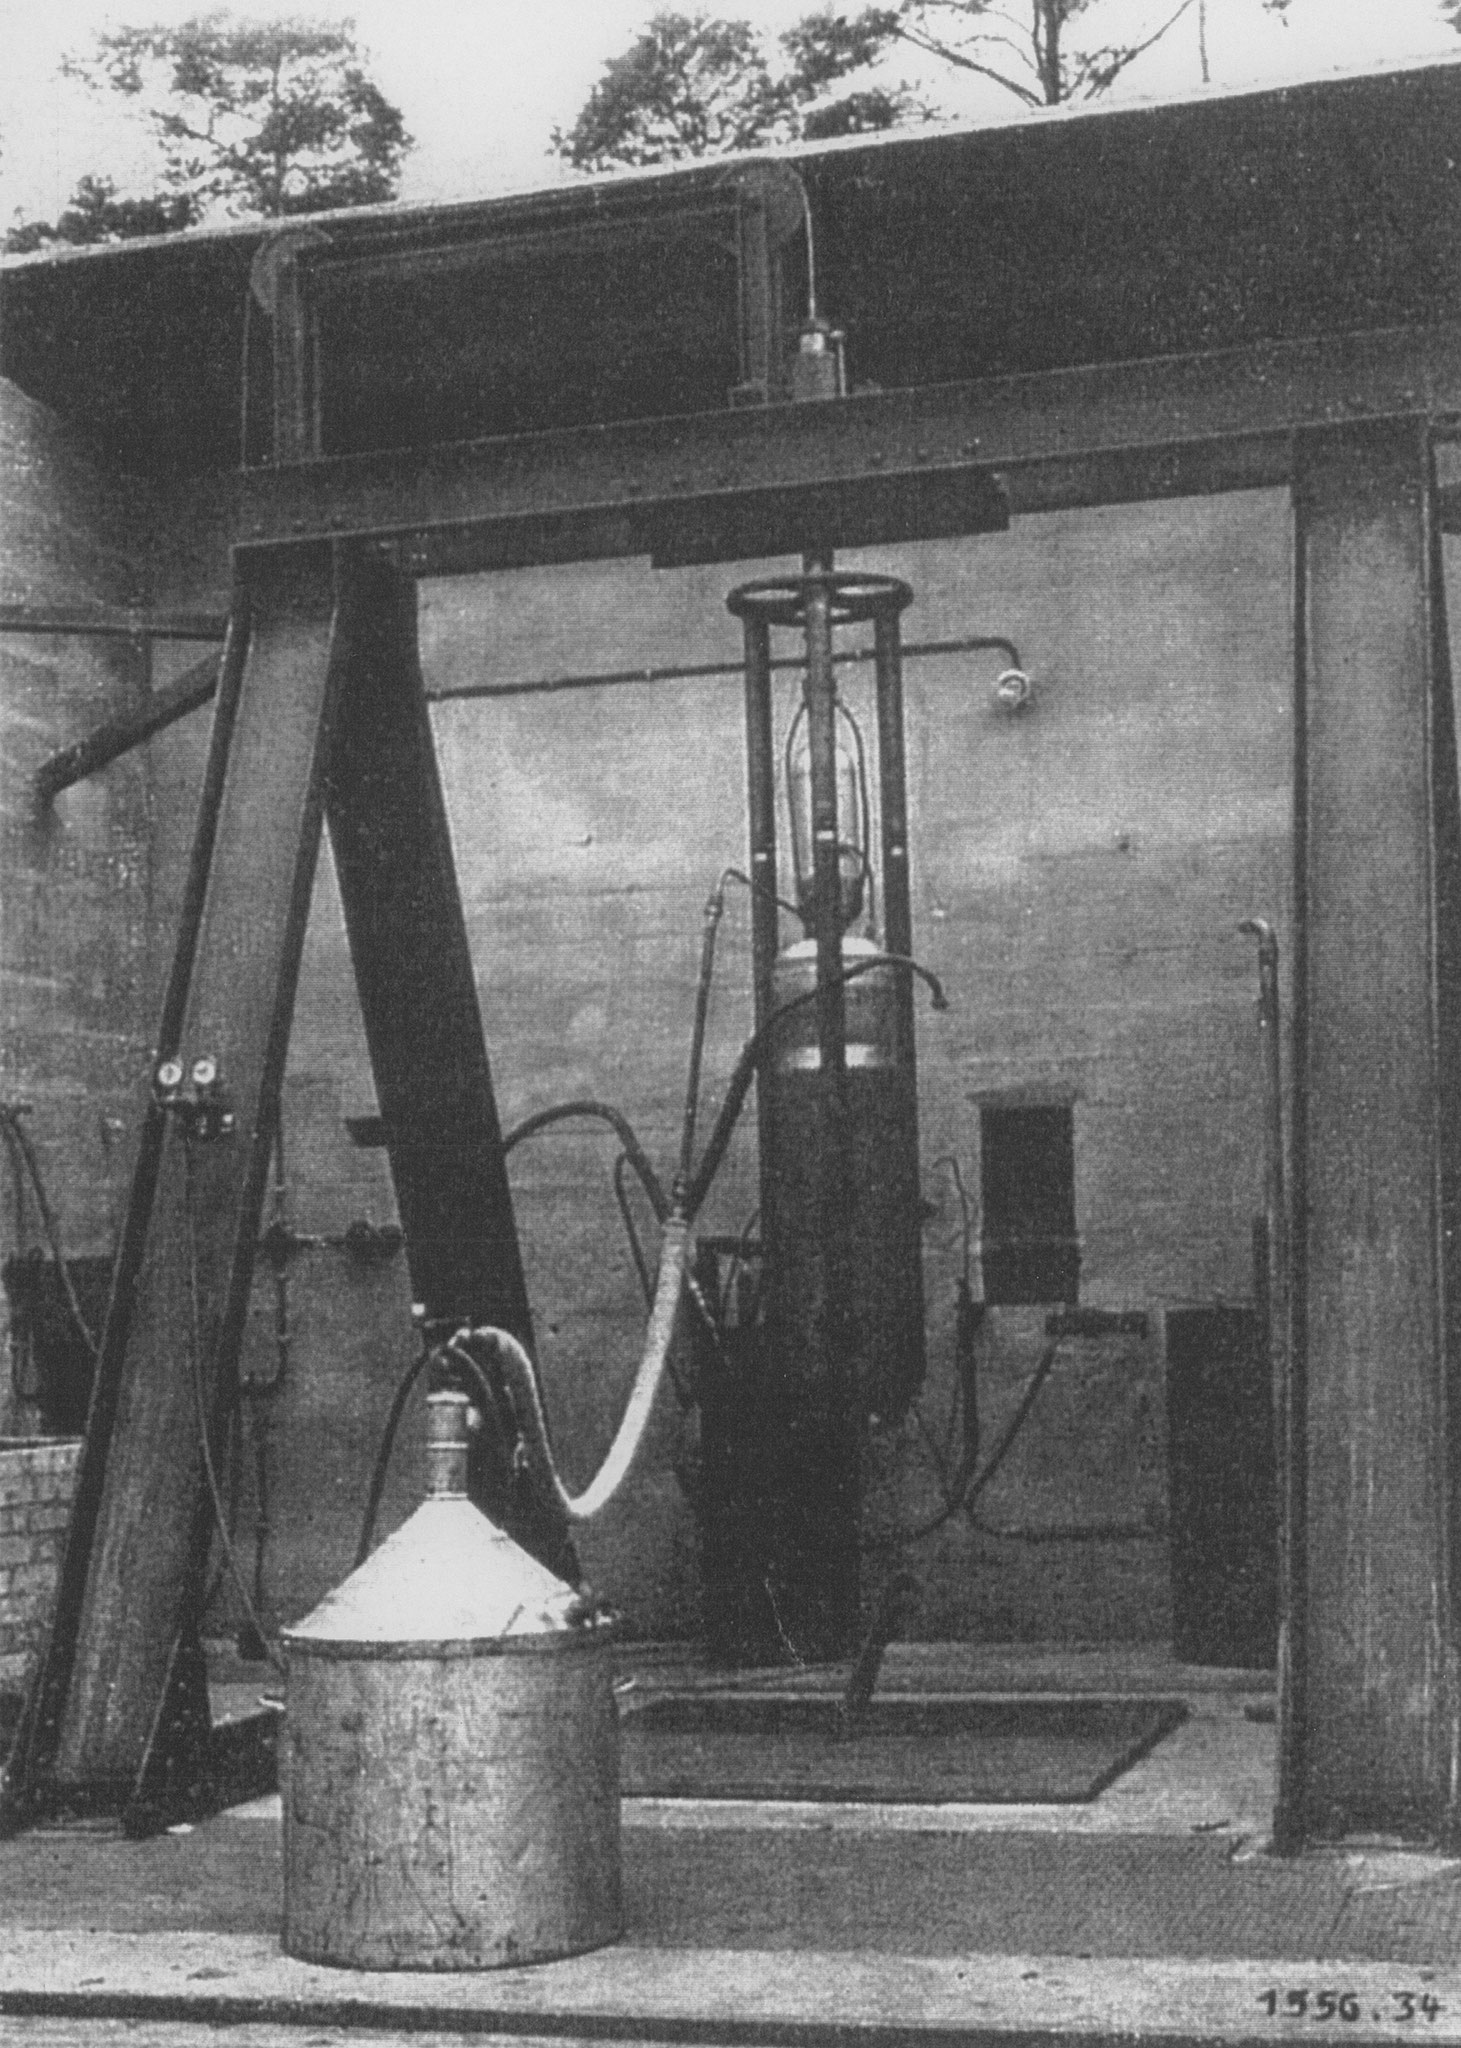 Liquid propellant engine on the test rig, circa 1930 (© Förderverein Museum Kummersdorf e. V.)